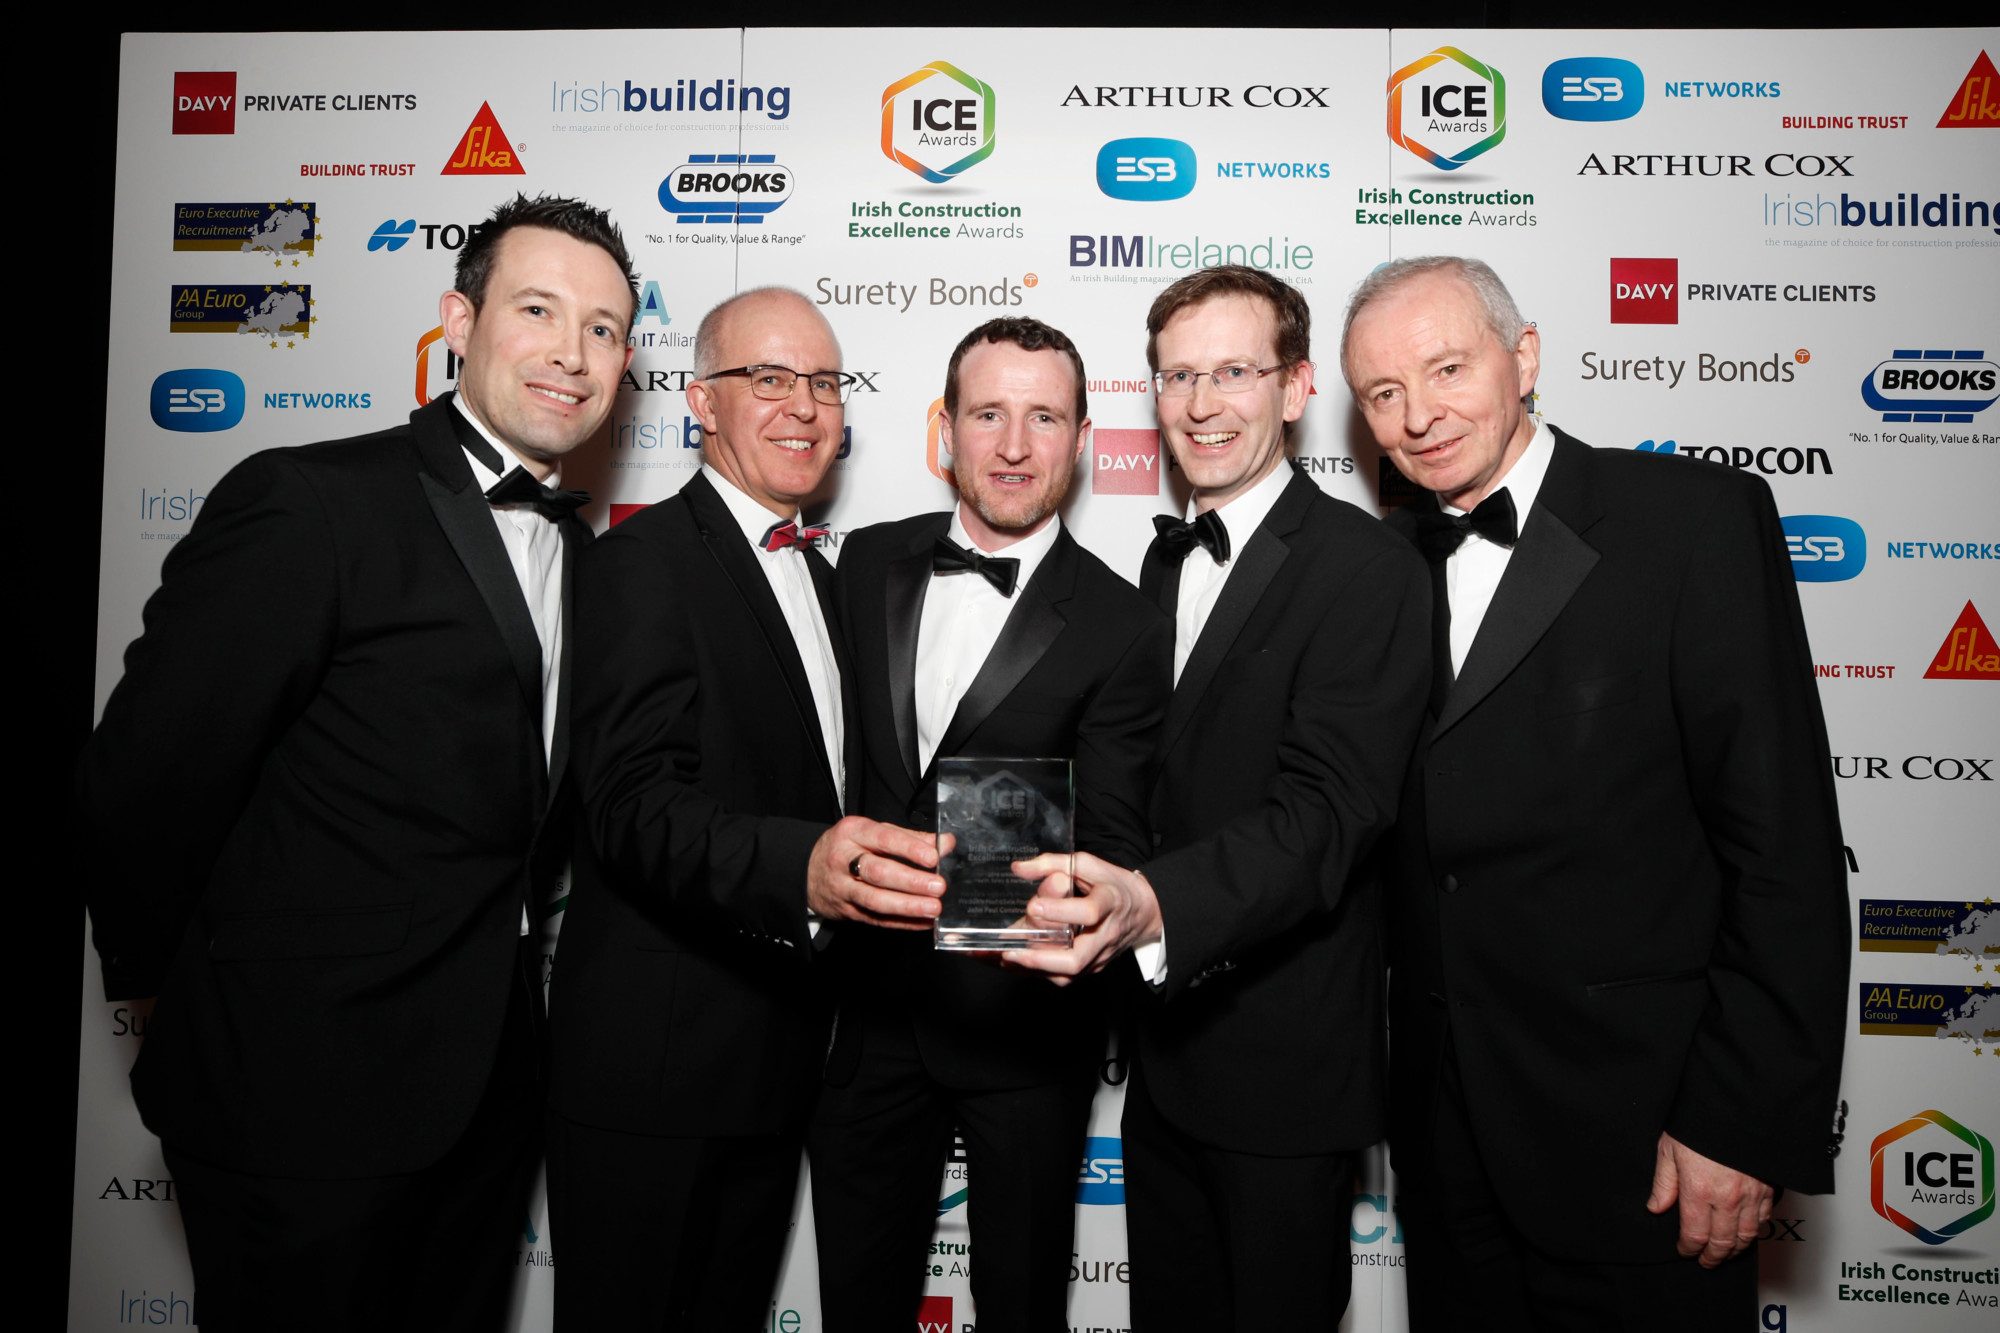 2018 Irish Construction Excellence Awards - Health, Safety & Wellbeing Award